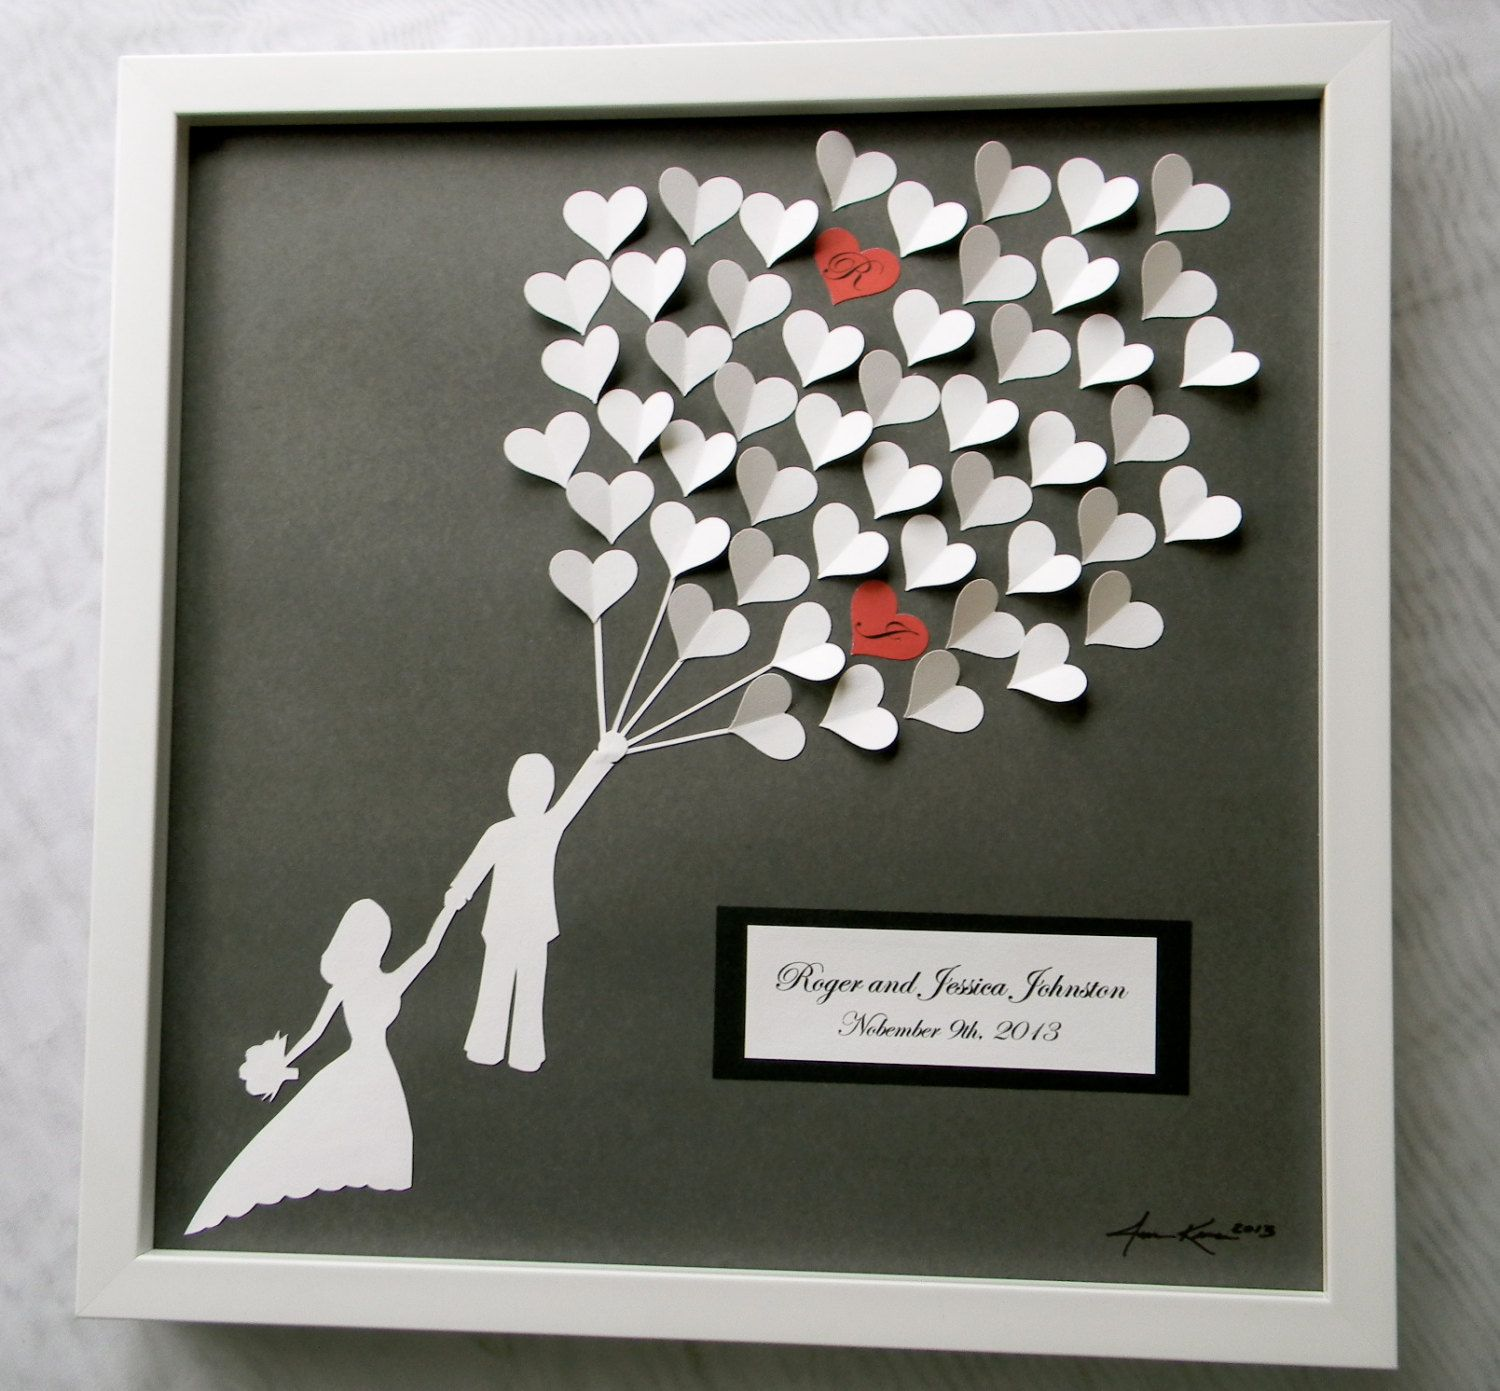 Ideas For Wedding Gift: Wedding Guest Book Alternative 3D Paper Hearts Lovely